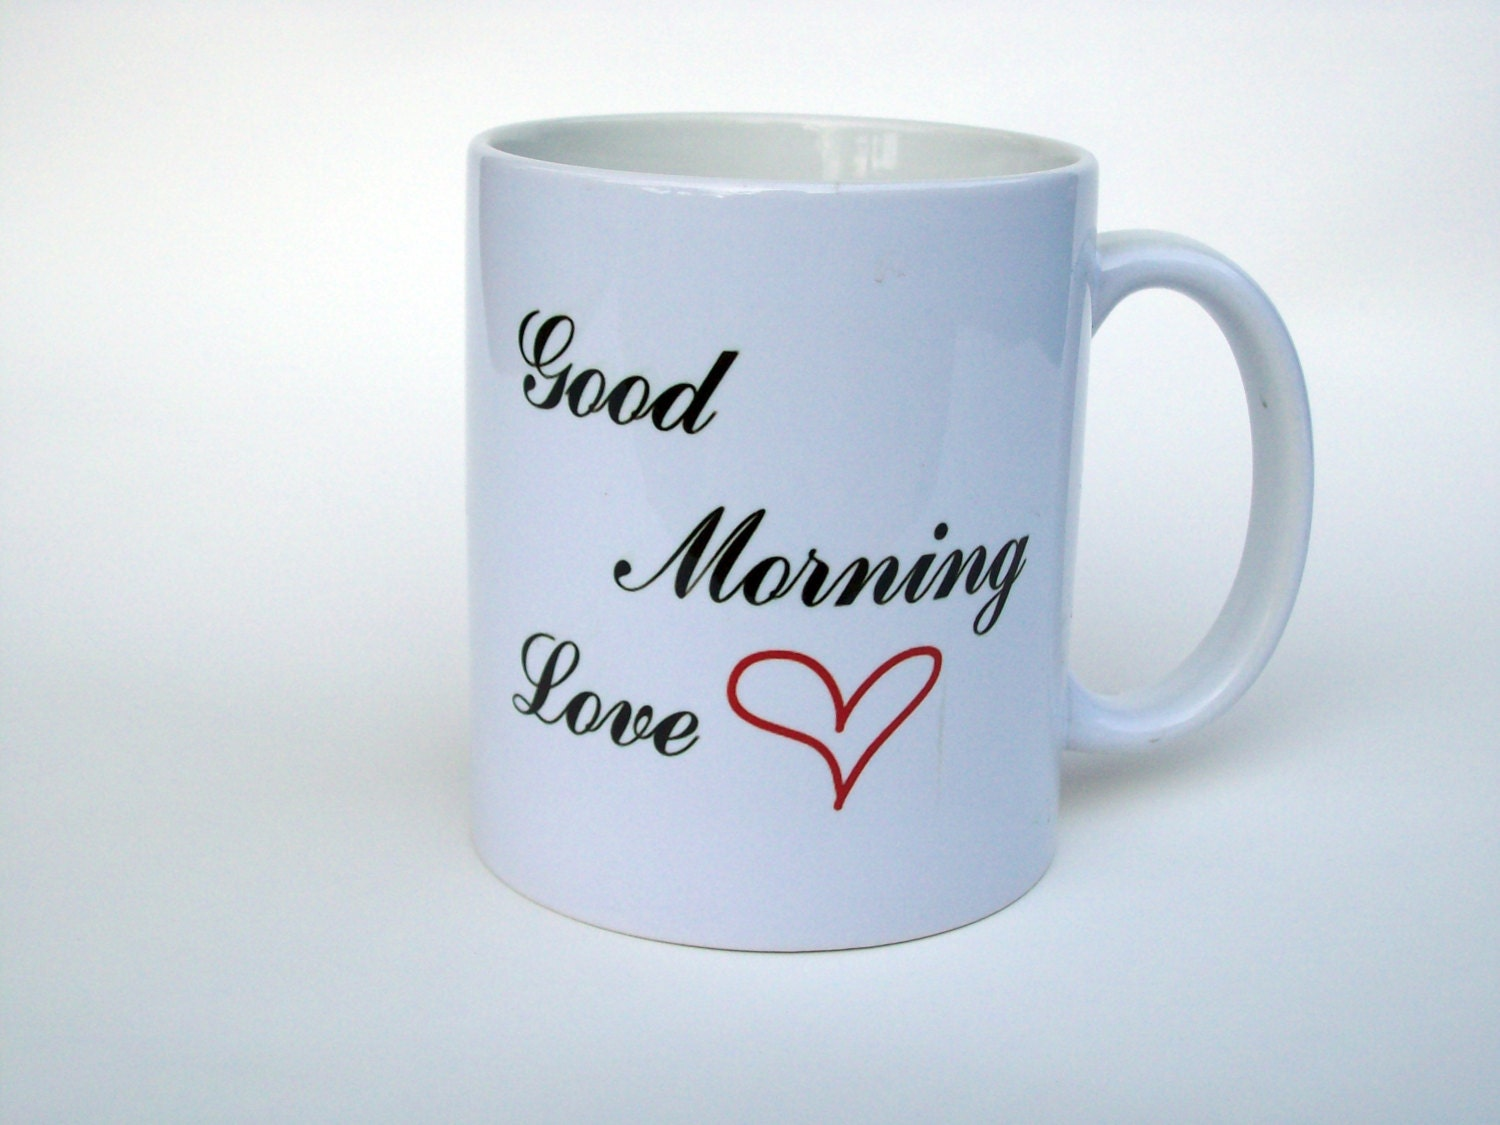 Good Morning Sweetheart Coffee : Good morning love coffee mug by themessageshop on etsy